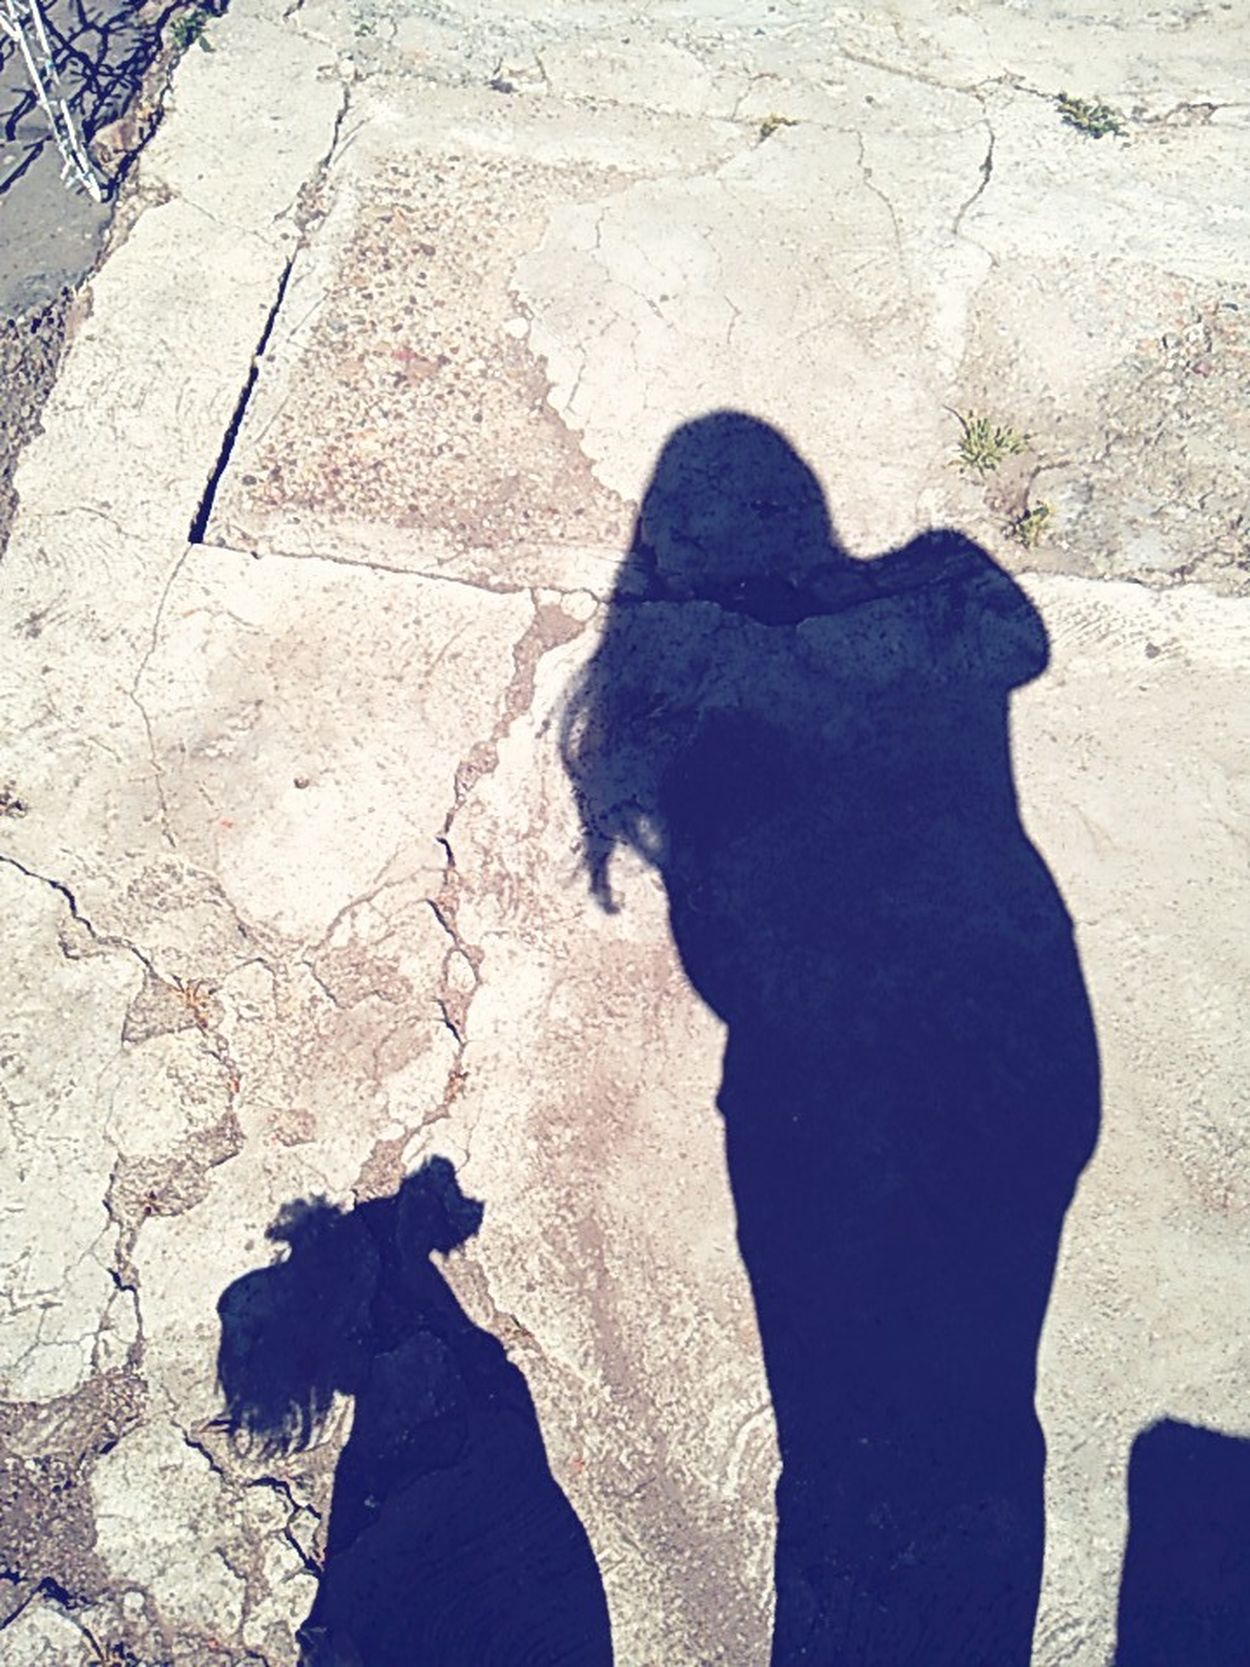 Shadow Focus On Shadow One Person Sunlight Real People Outdoors Day Women Human Body Part Low Section Siluet Sombras Sombra Dog Dogs Of EyeEm Dogs First Eyeem Photo Love Dogs Dogslife Dosg Human Hand People Adults Only Adult